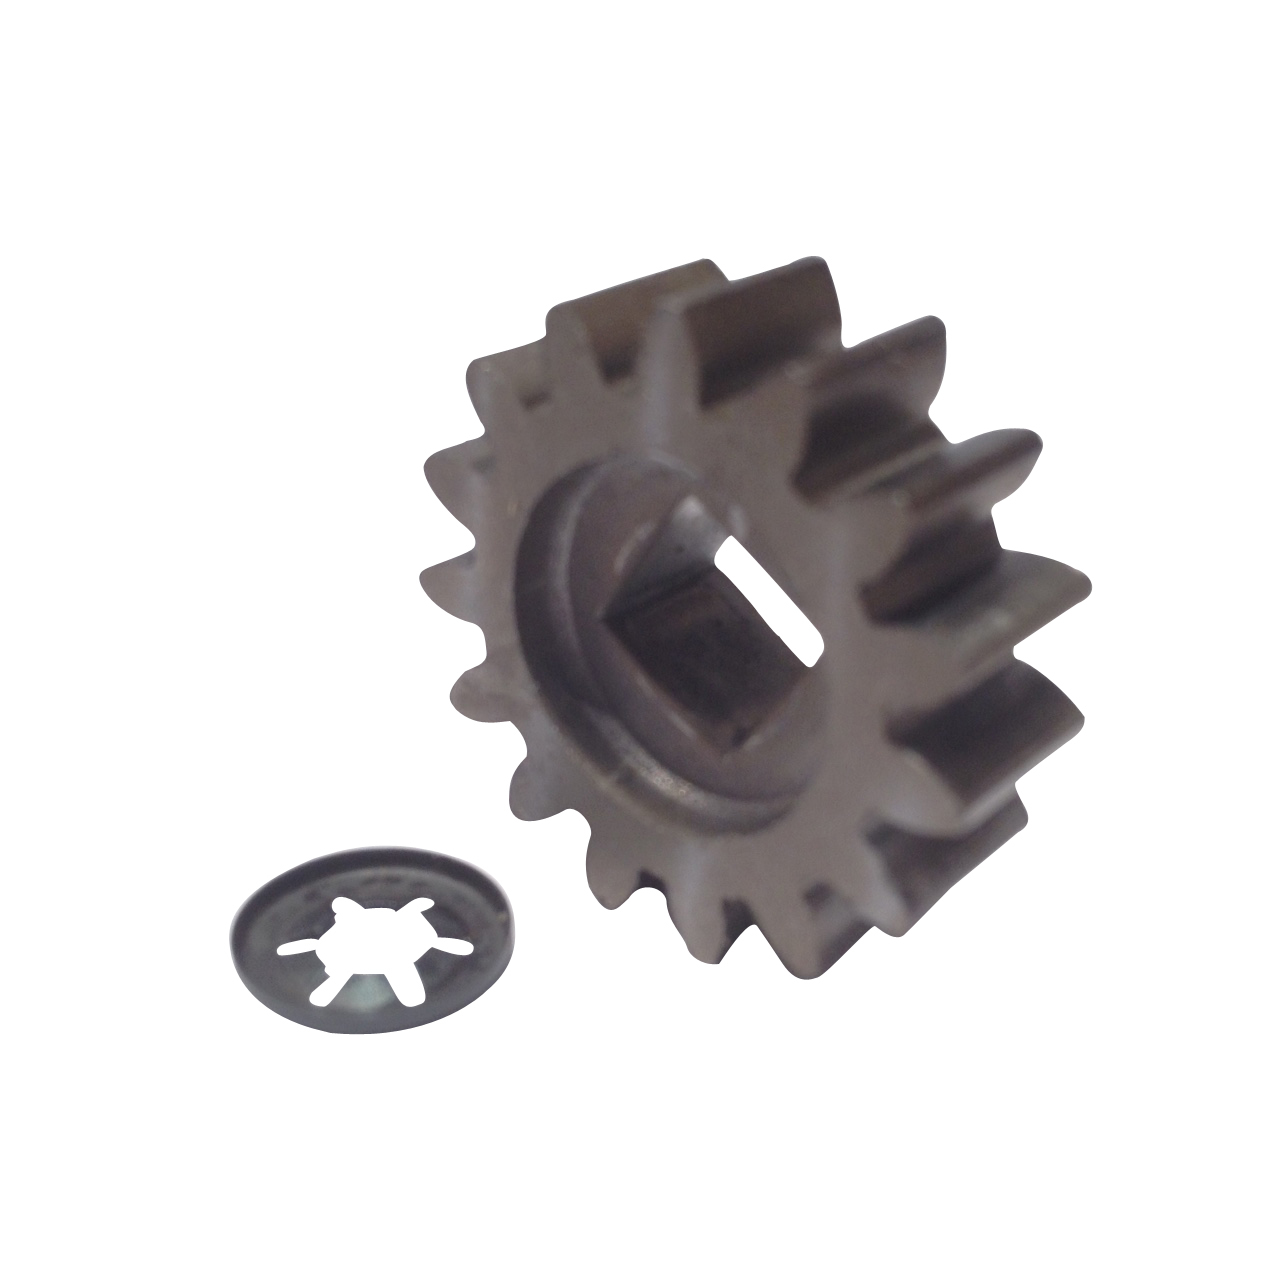 CLUTCH DOG /& GREASE A707 A717 GEARBOX DELRIN DRIVE PINION A515 BLAKESLEE A505